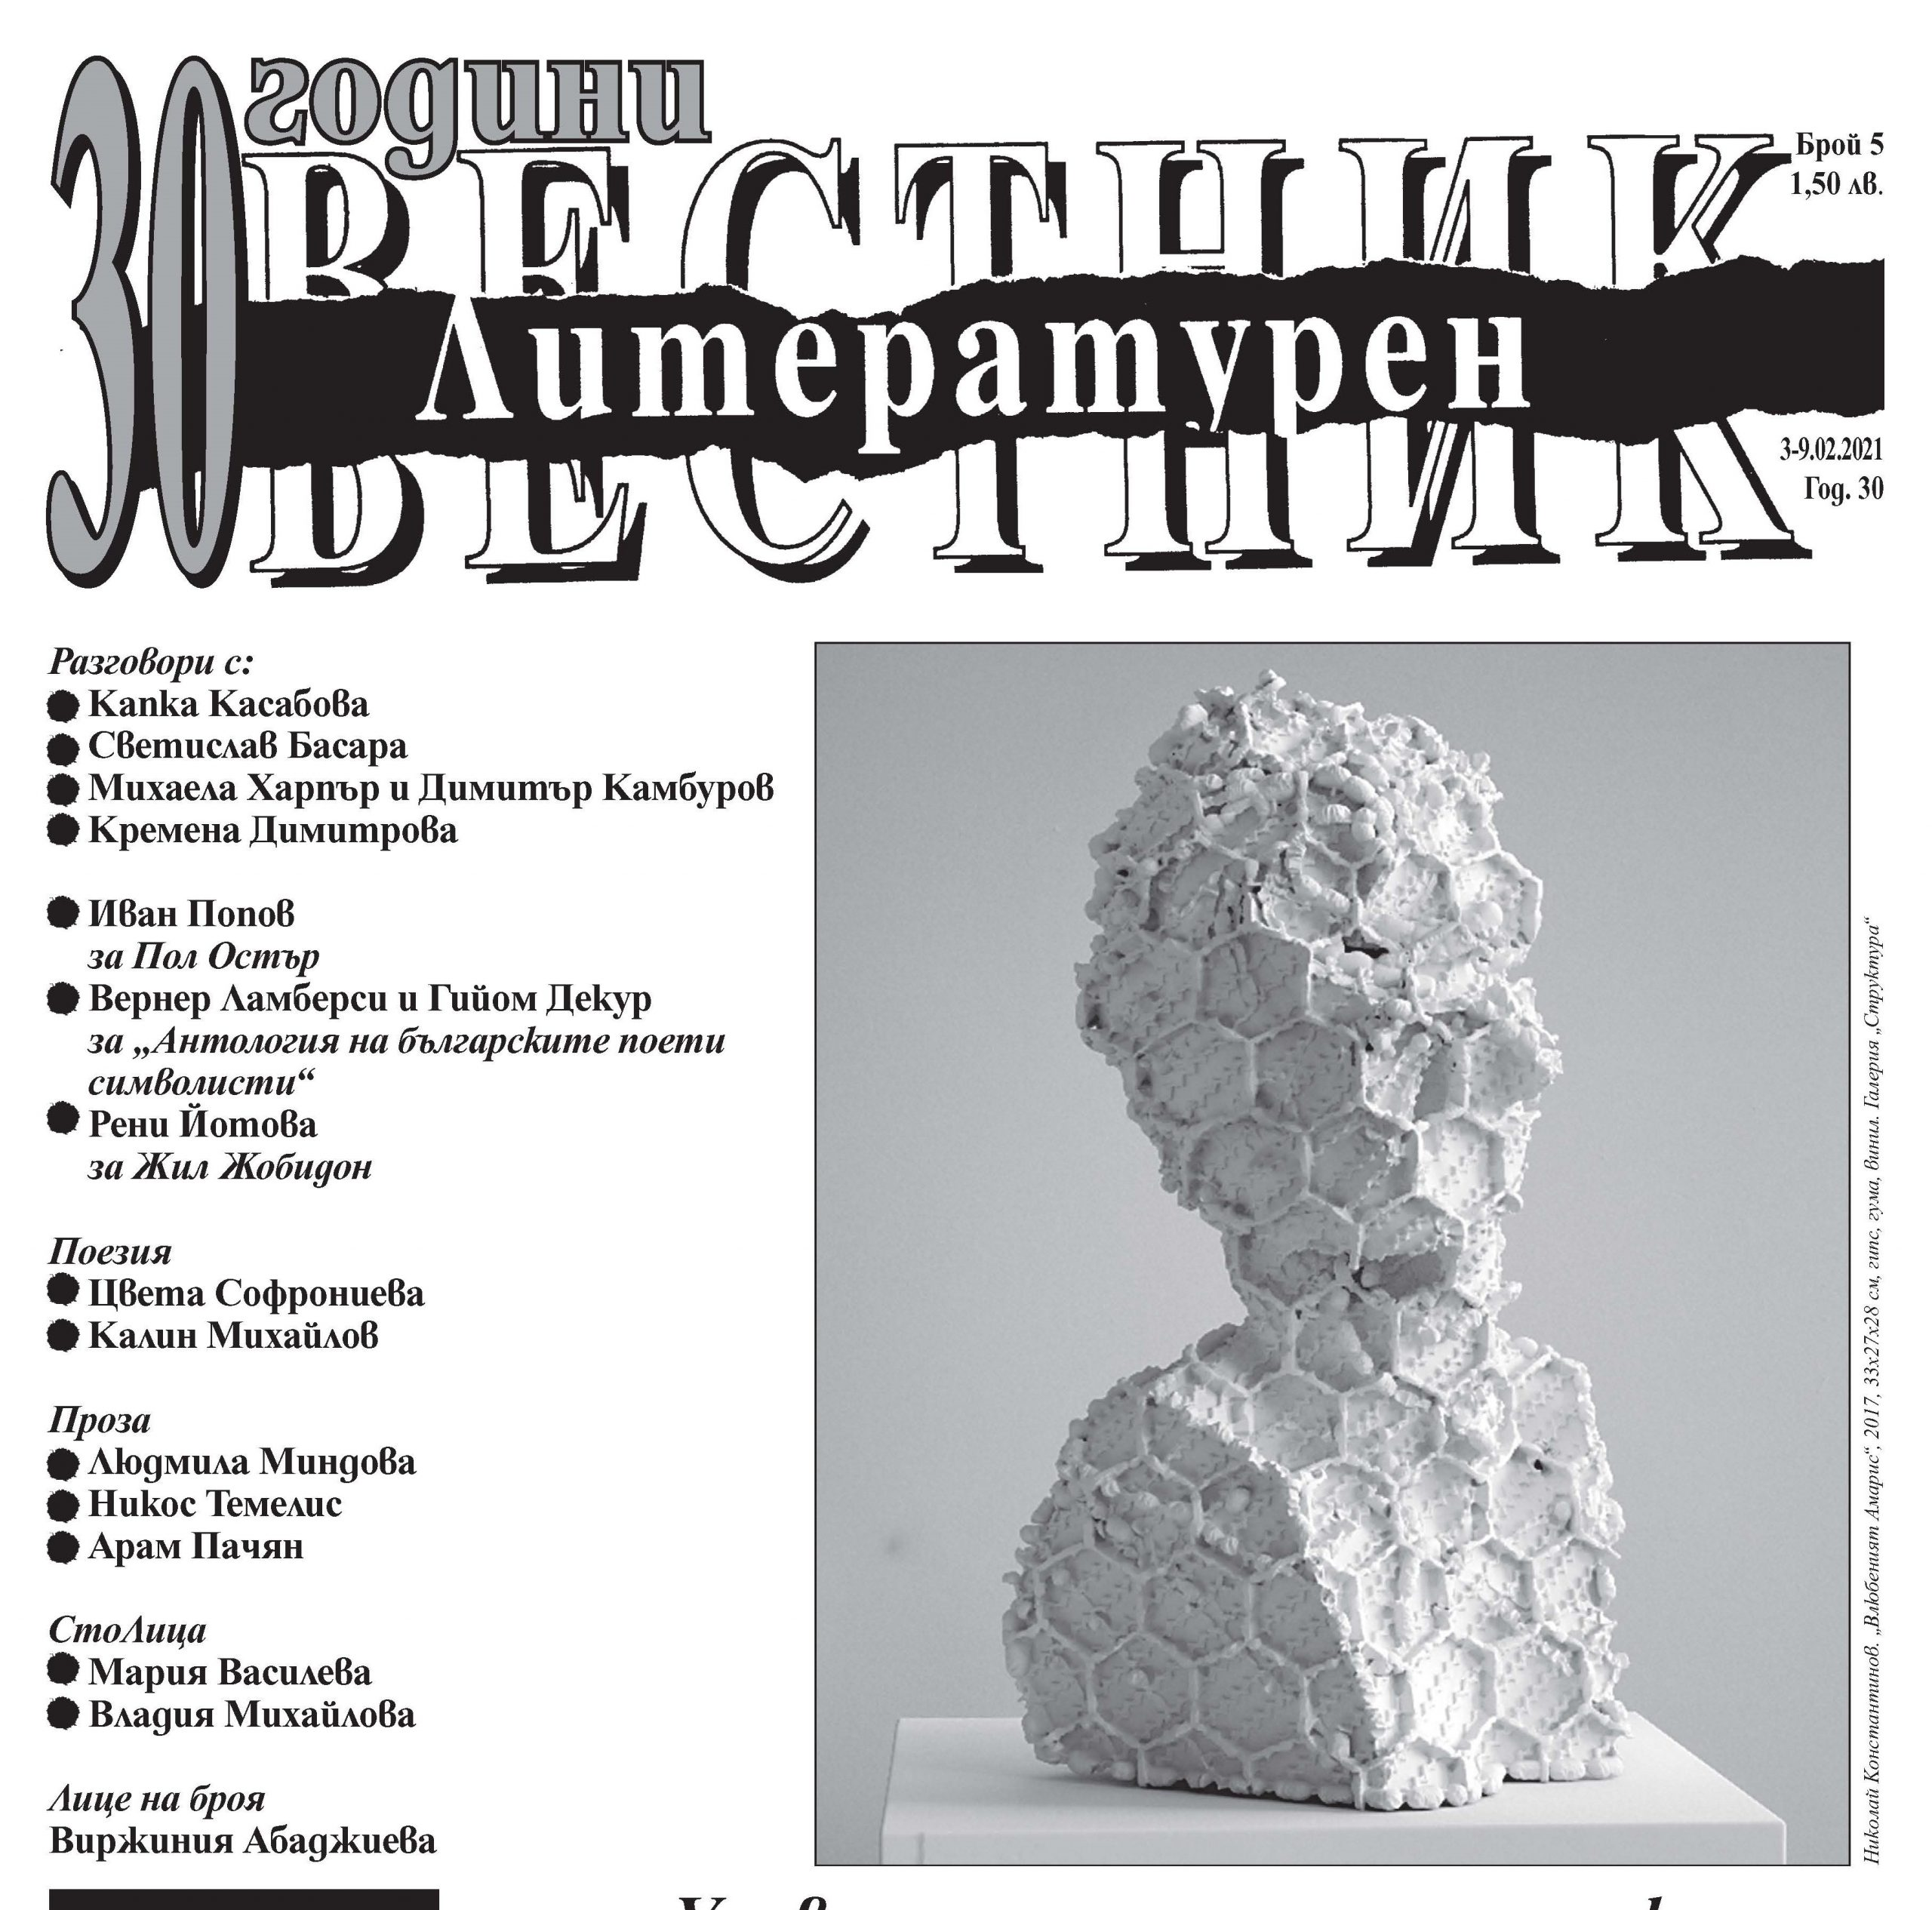 ARAM PACHYAN'S ESSAY WAR, DEAD OR ALIVE PUBLISHED IN BULGARIAN